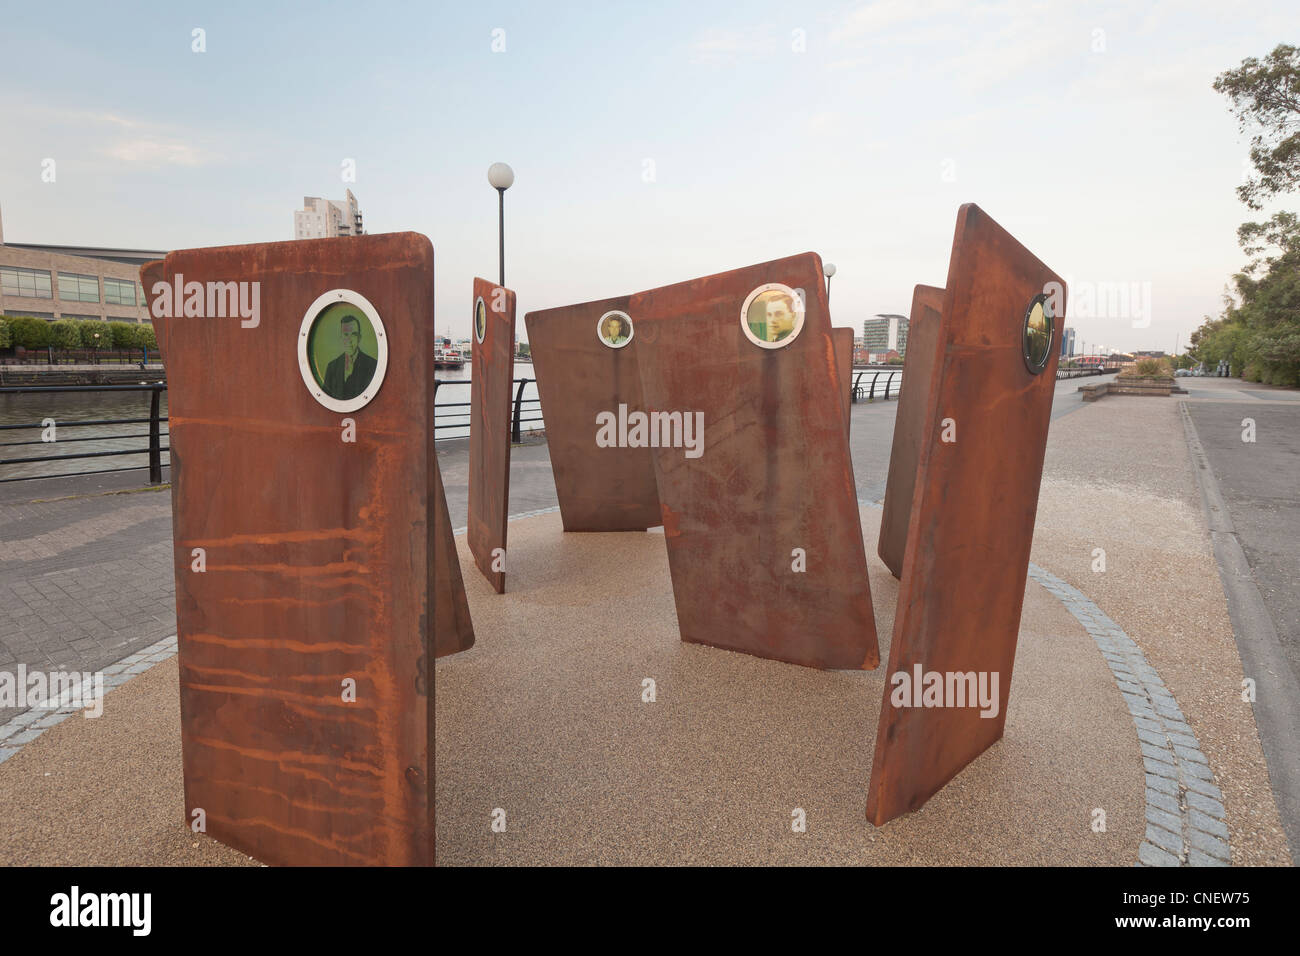 Casuals, a sculpture by Broadbent at Salford Quays, Manchester, England - Stock Image